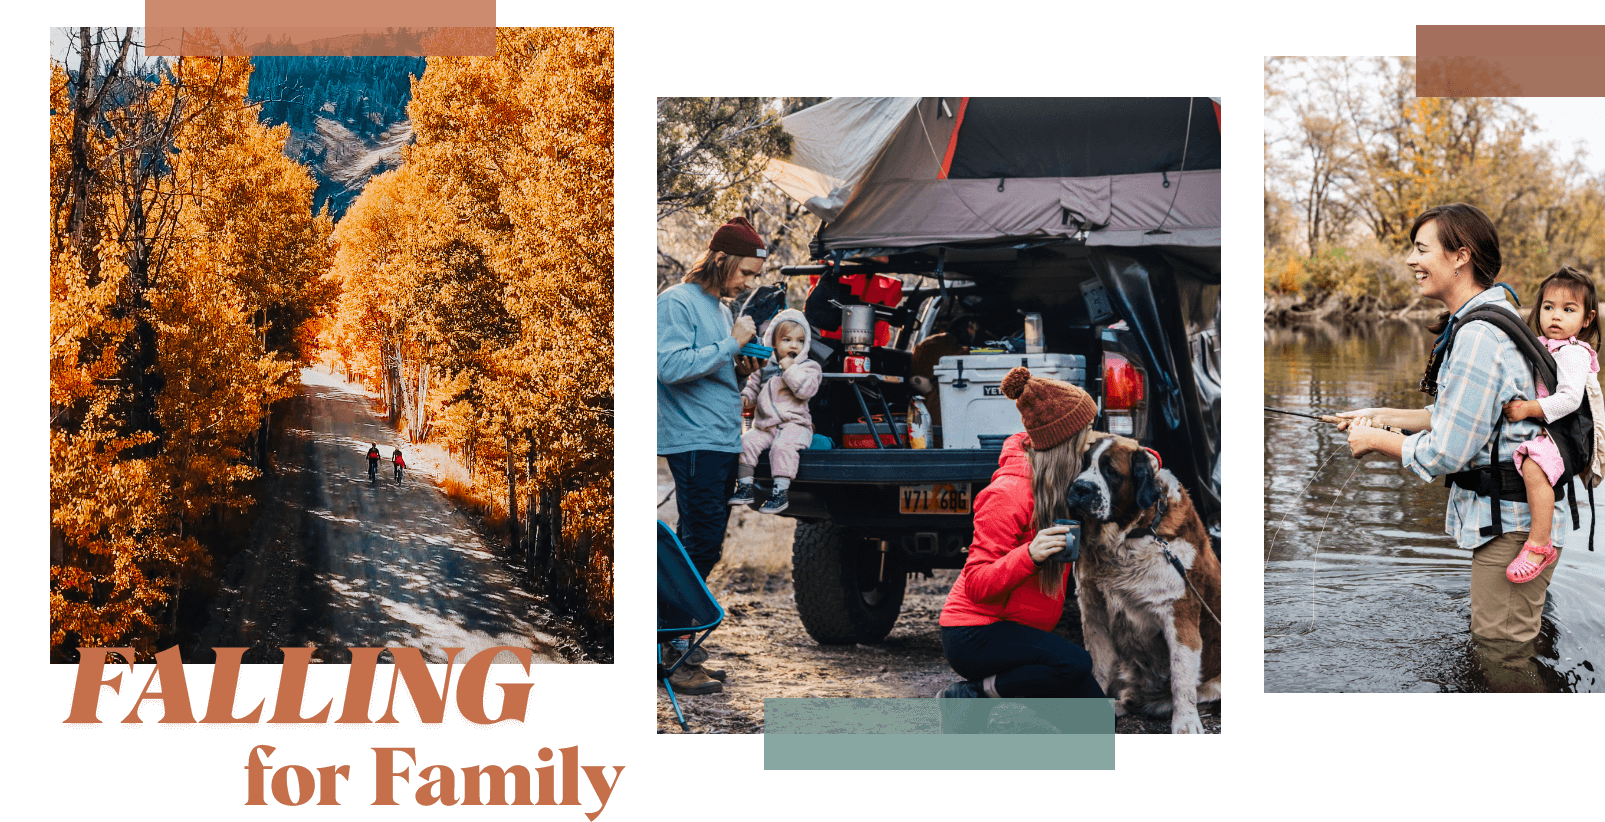 falling for family transparent graphic